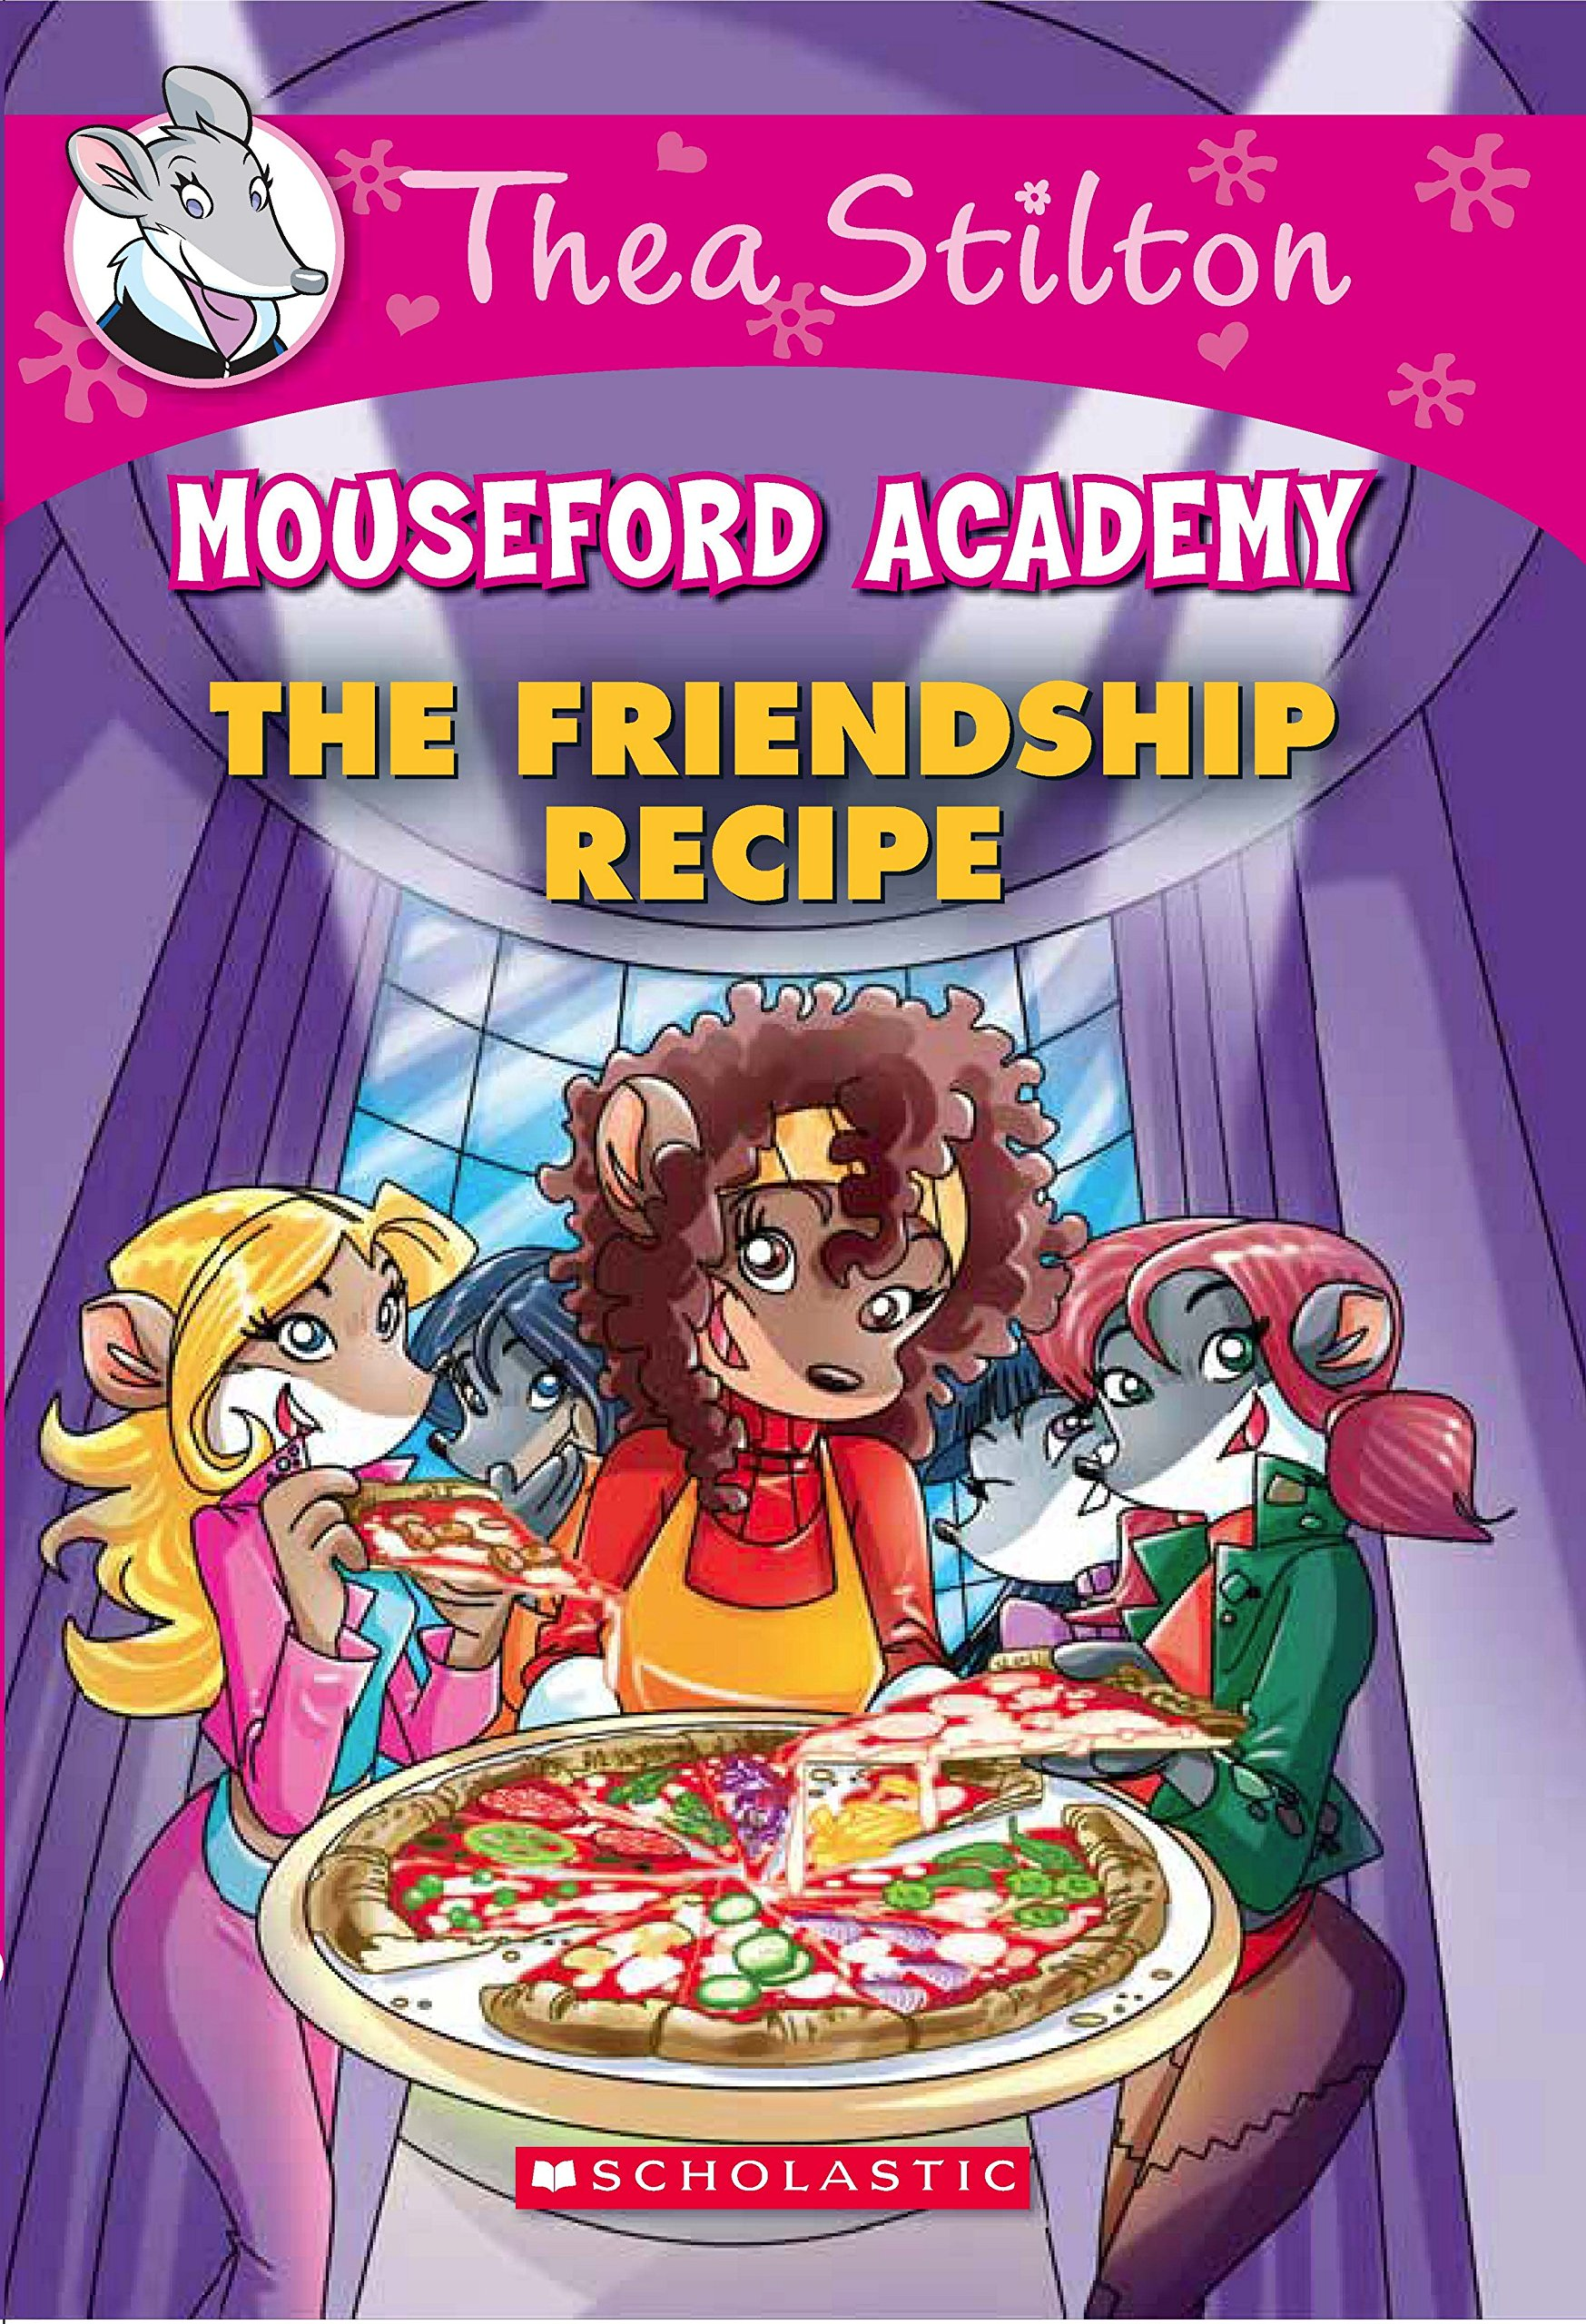 Buy Thea Stilton Mouseford Academy 15 The Friendship Recipe Book Online At Low Prices In India Thea Stilton Mouseford Academy 15 The Friendship Recipe Reviews Ratings Amazon In